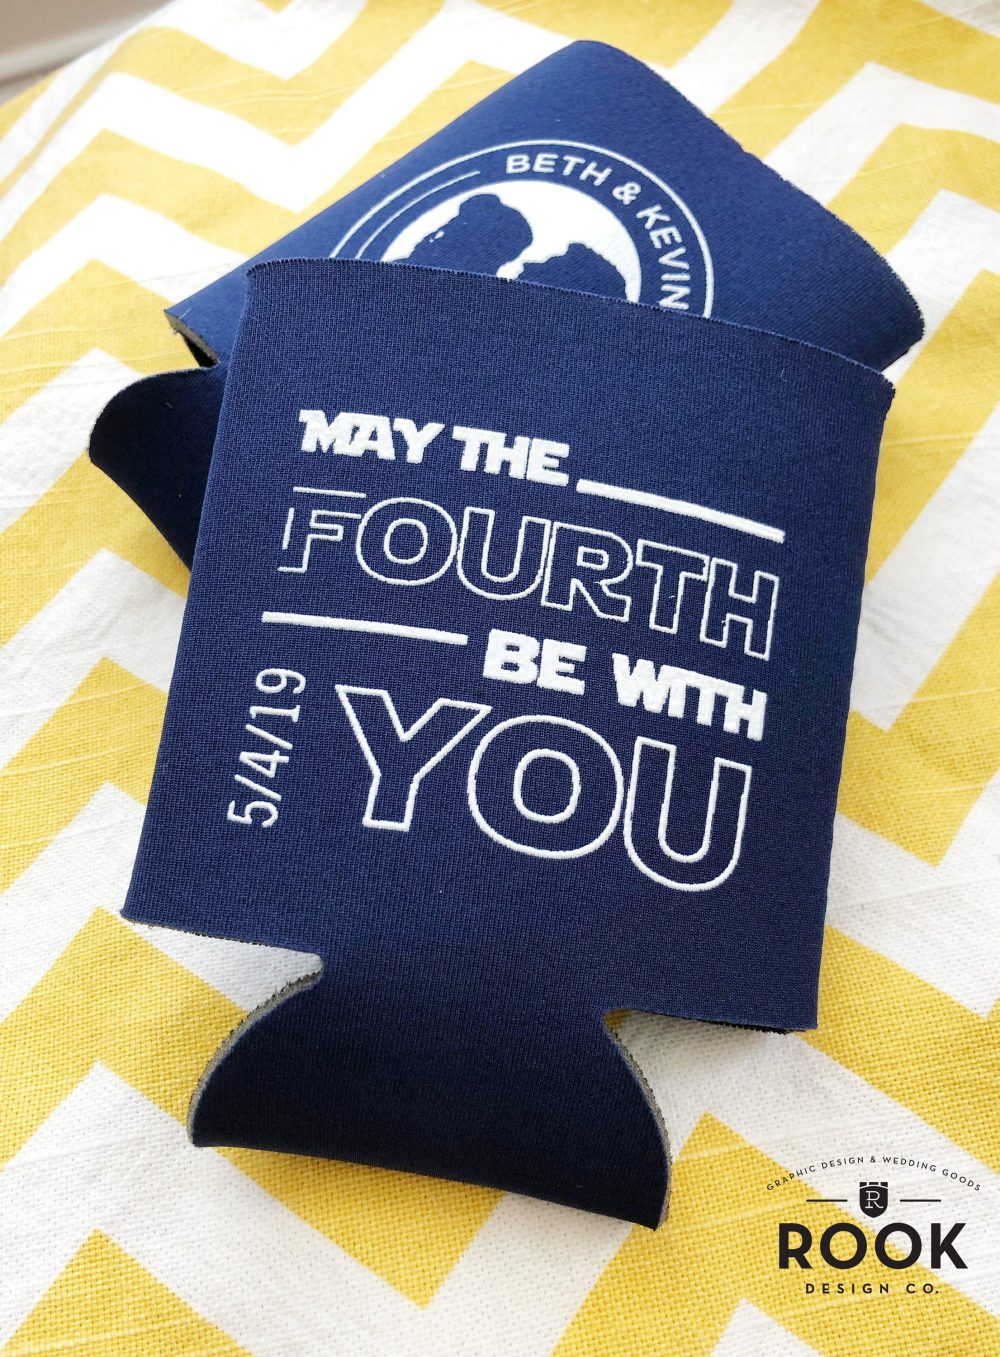 May The Fourth Be With You Can Coolers, May 4Th Wedding, Star Wars Wedding Favor, Koozy, Princess Leia, Funny Coolers